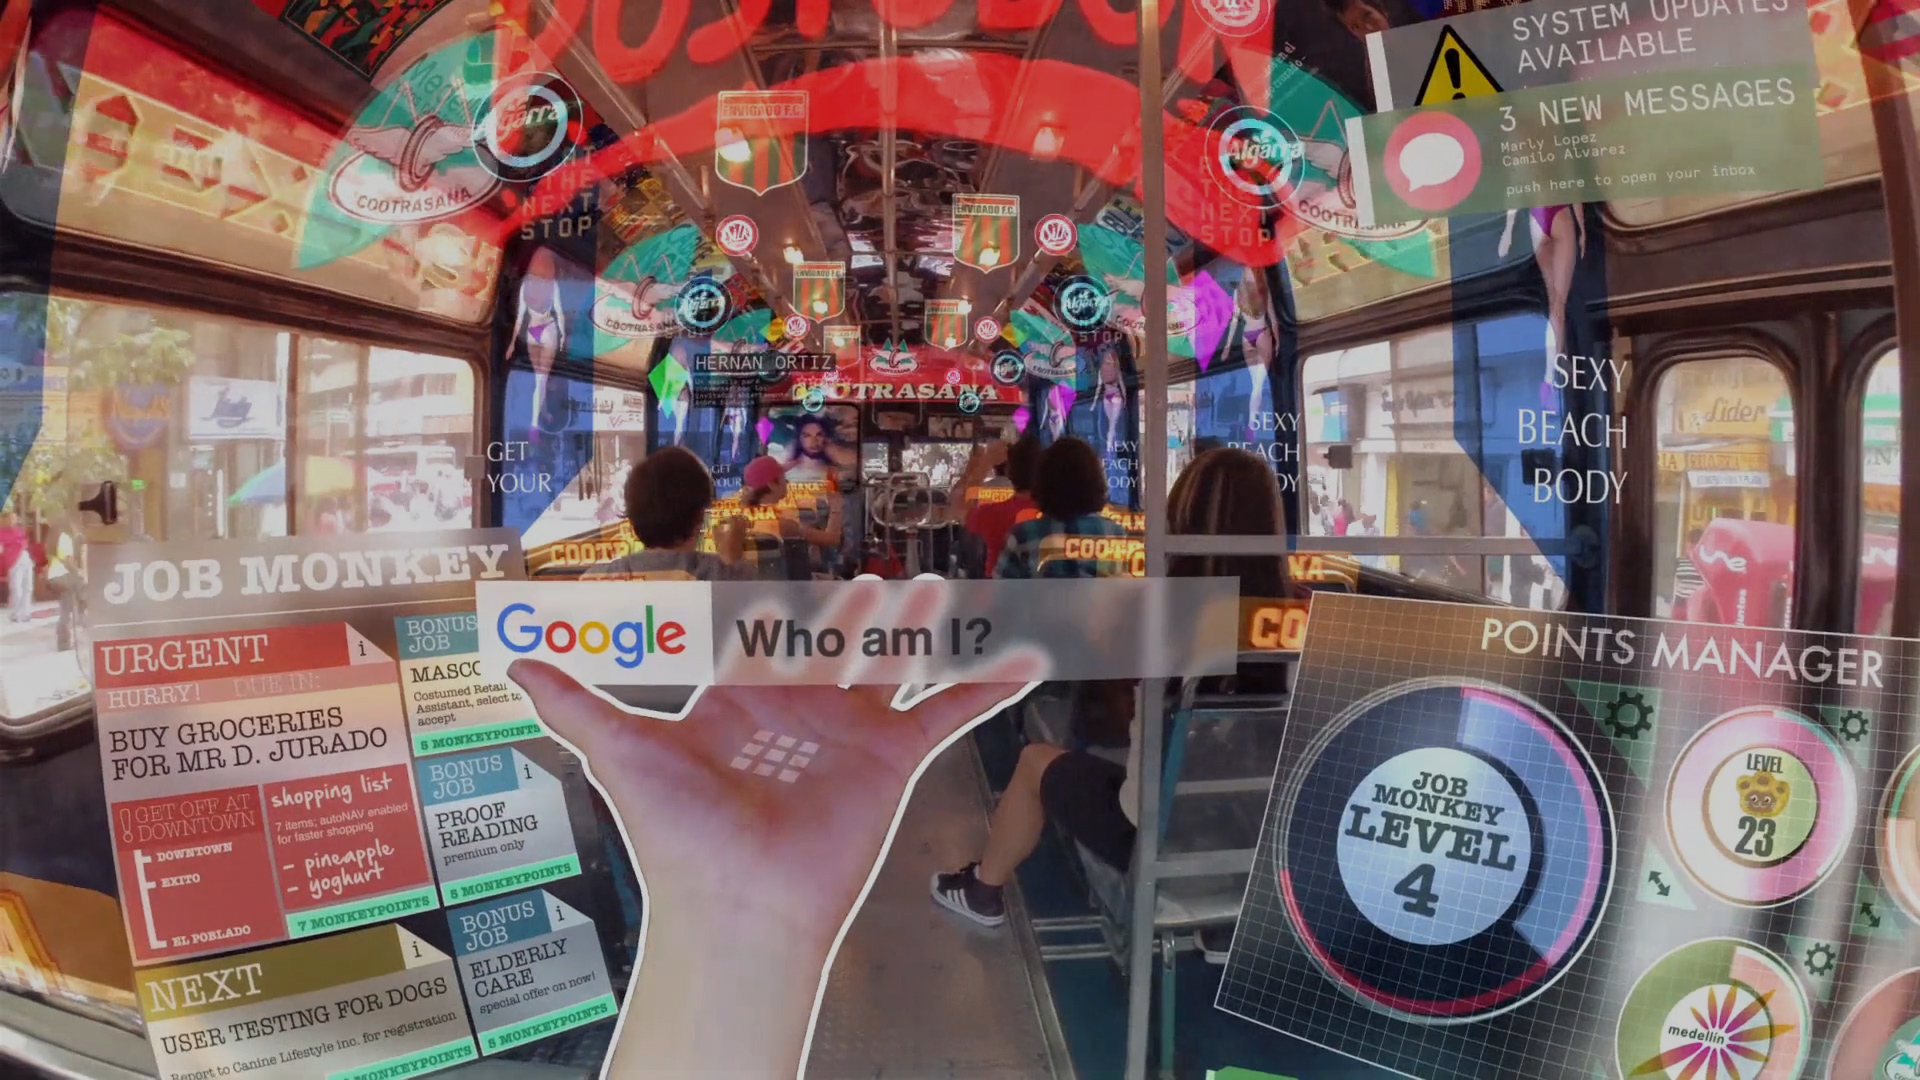 Video: Short film depicts horrific future of augmented reality (Tomorrow Daily 370)